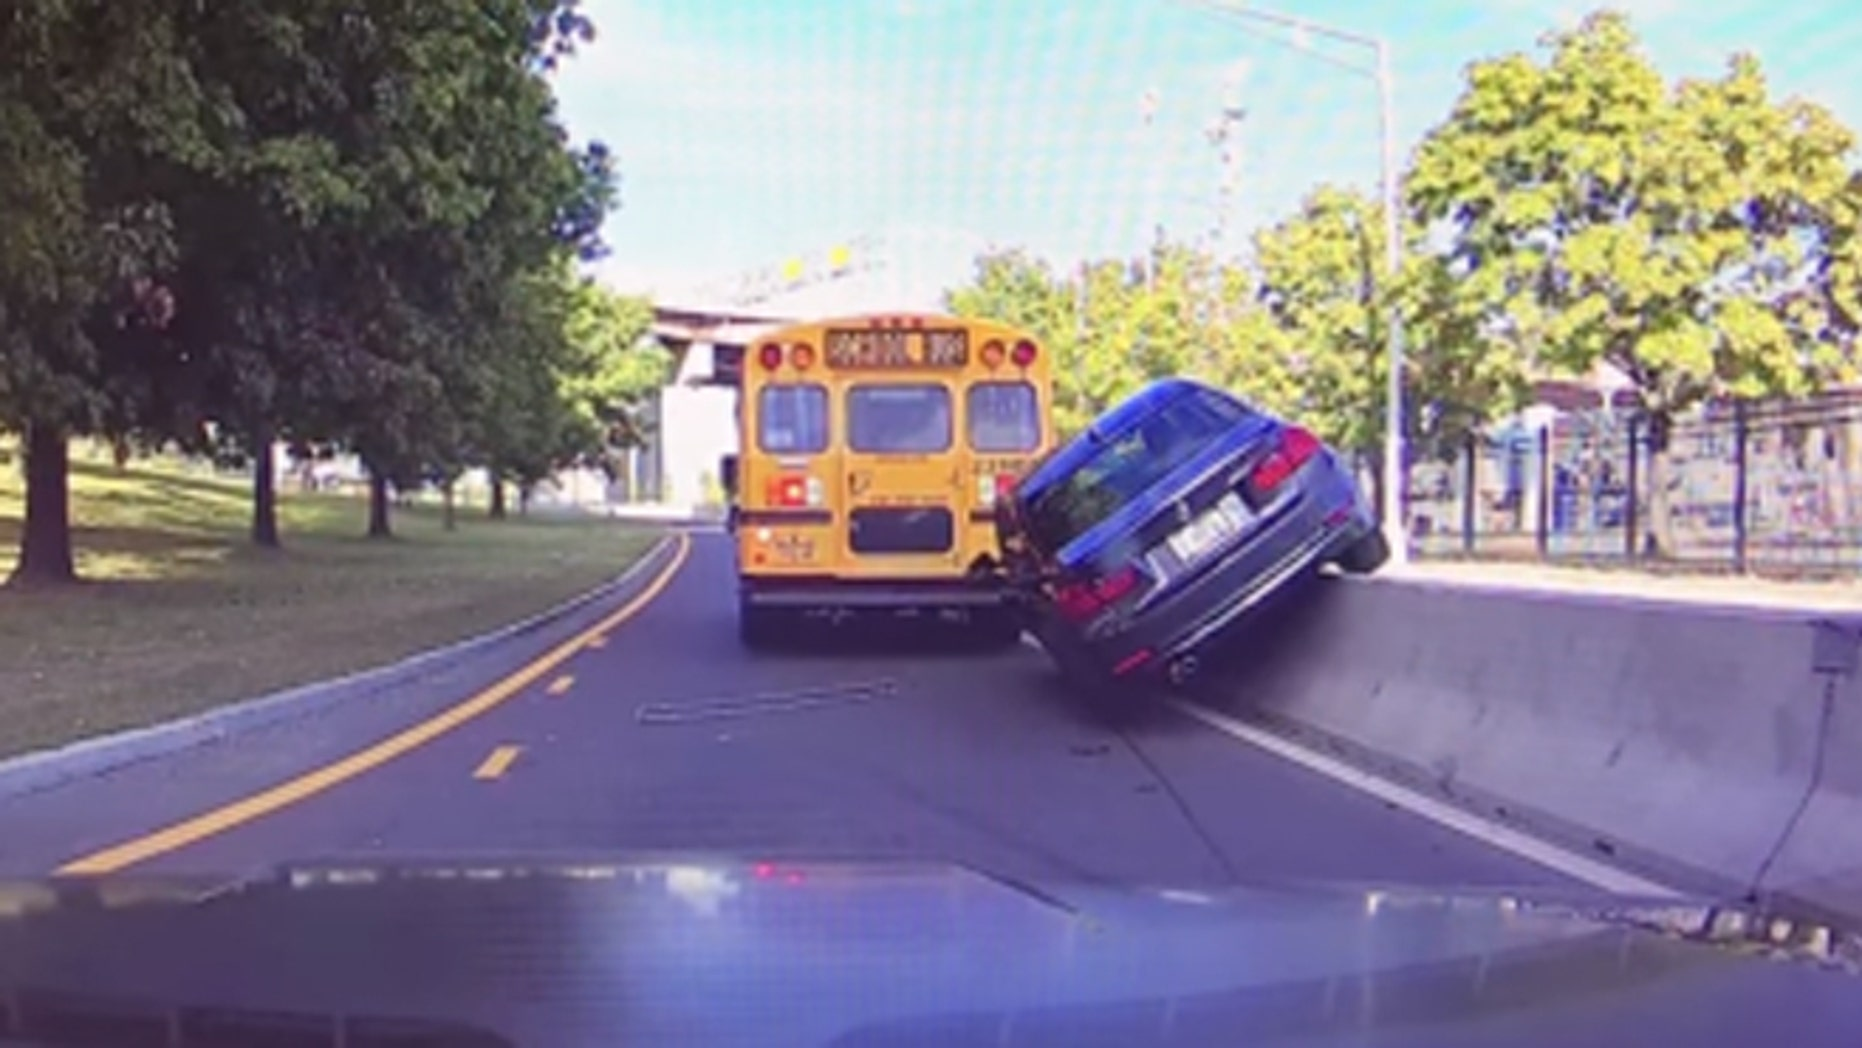 Video captured BMW crashing into construction barrier after nearly striking school bus. (WTEN-TV)